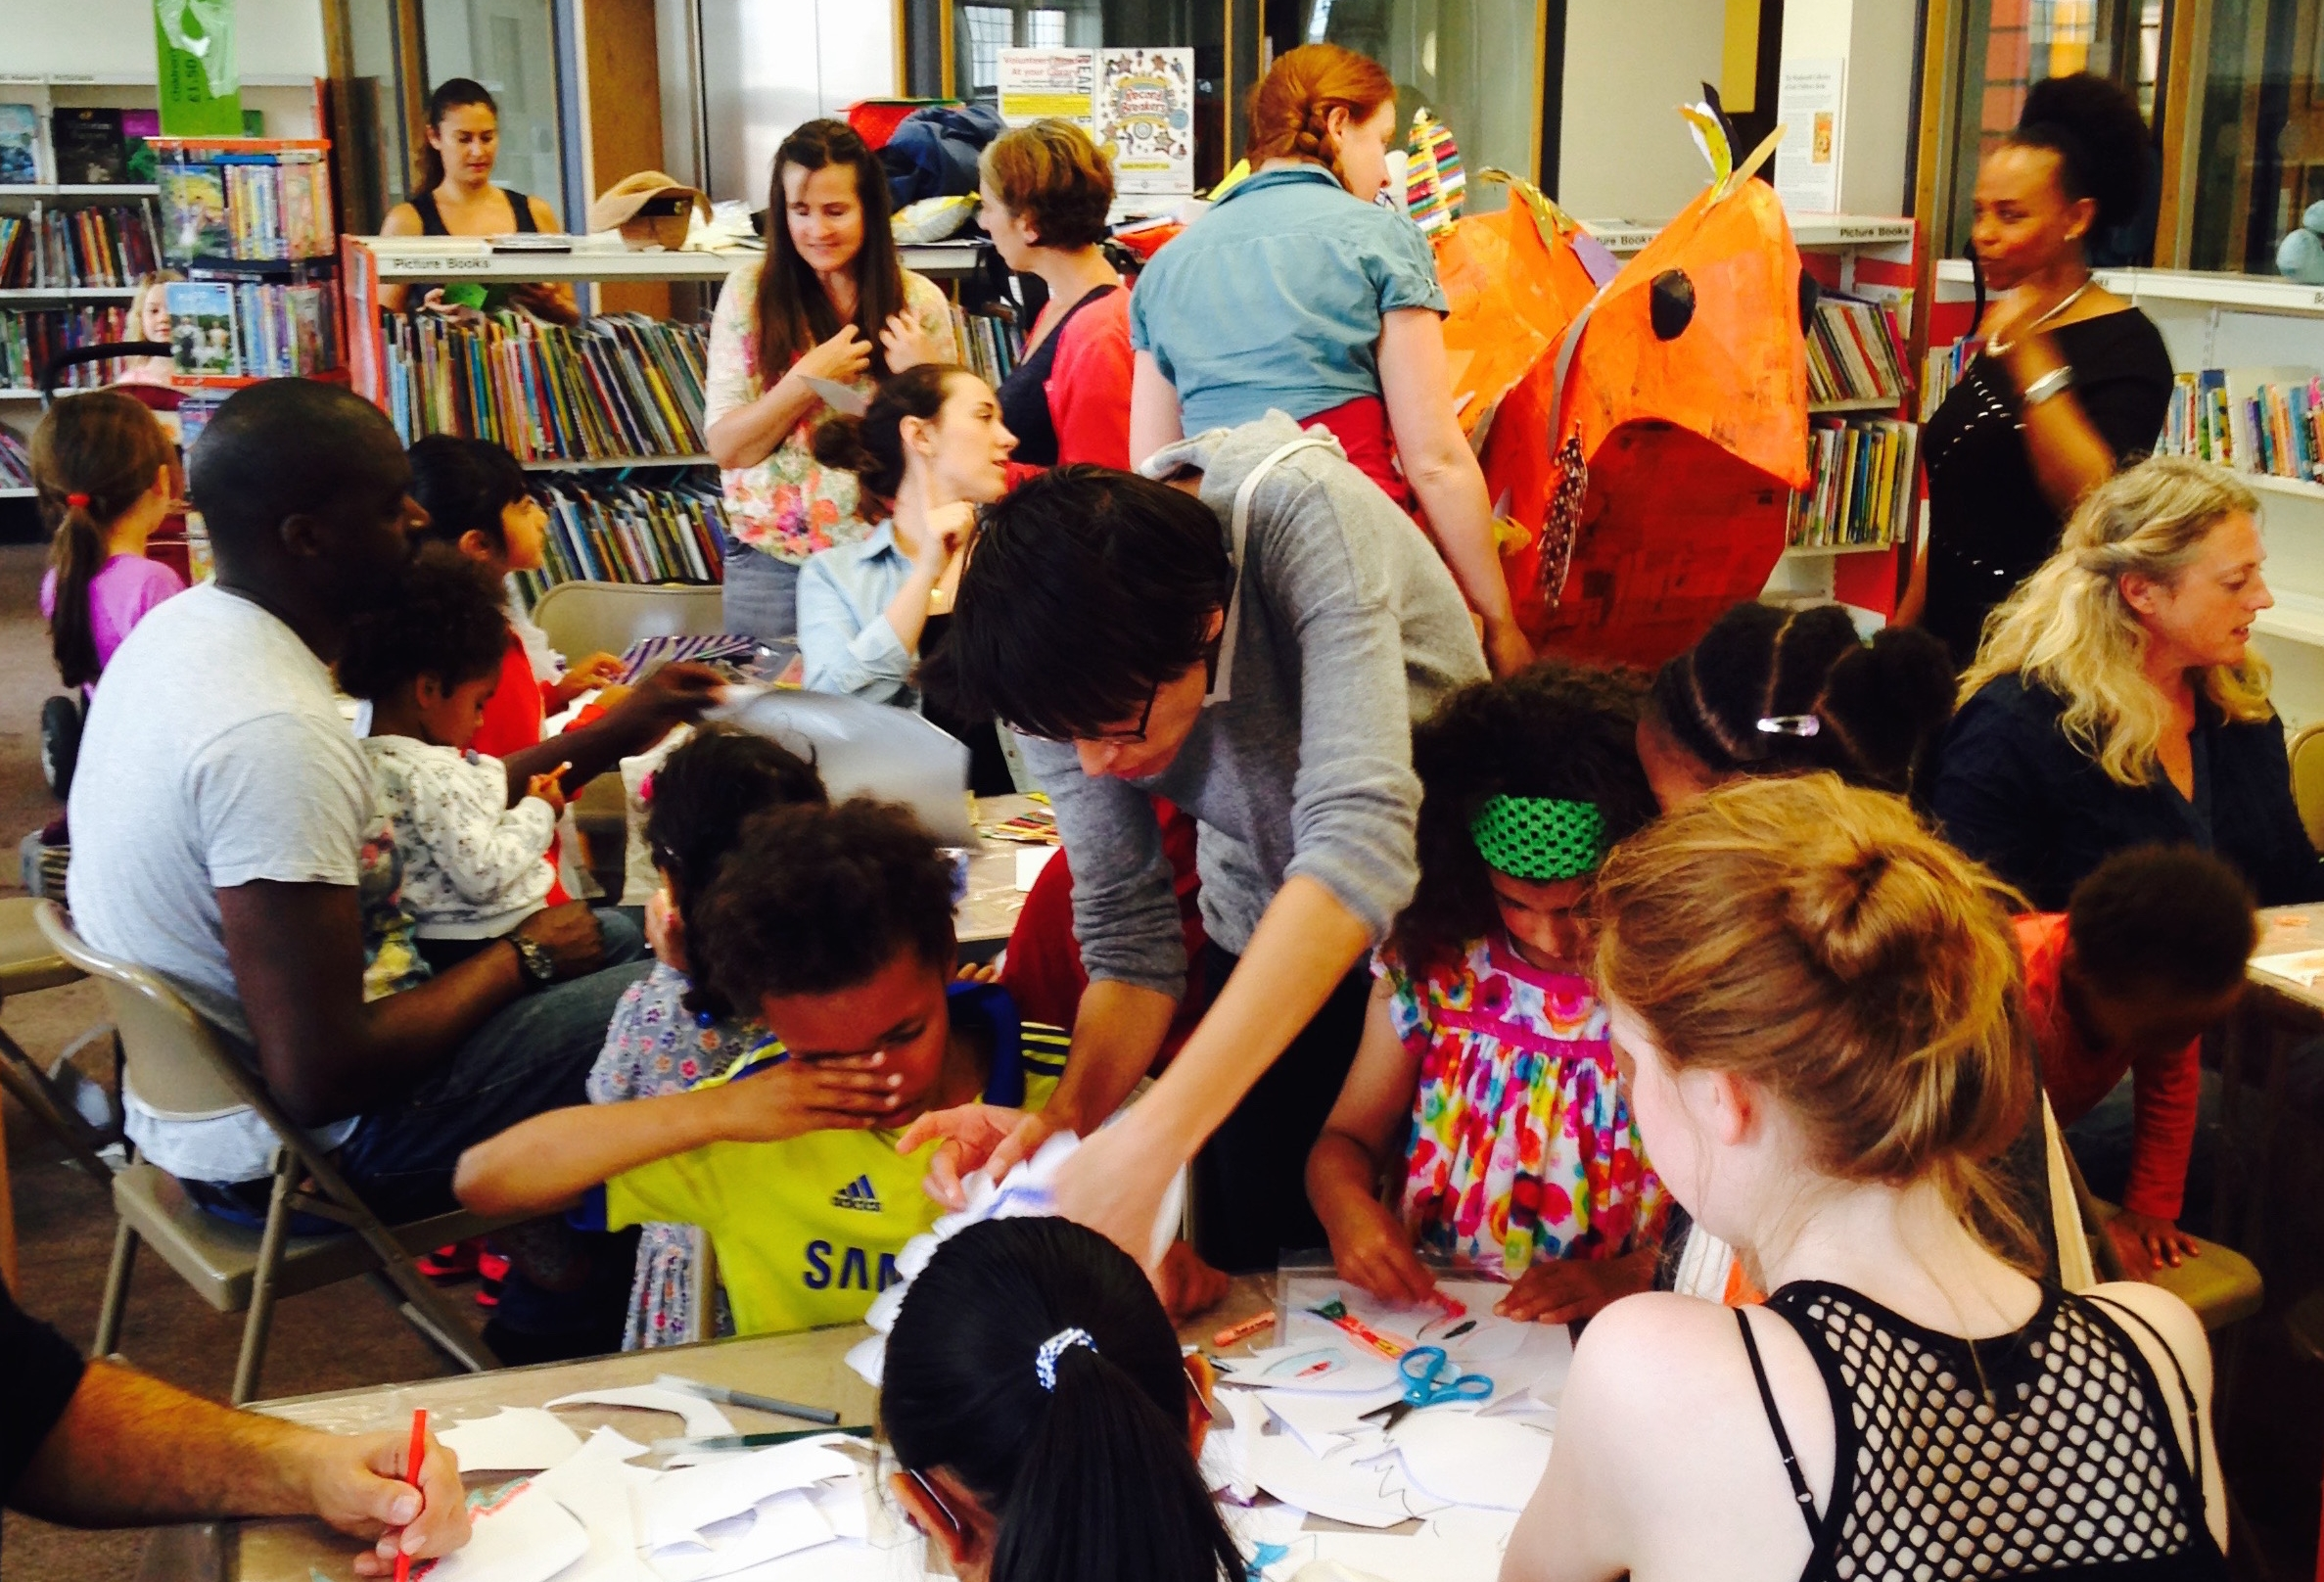 Making puppets and decorating the giant orange bird in Tooting library.